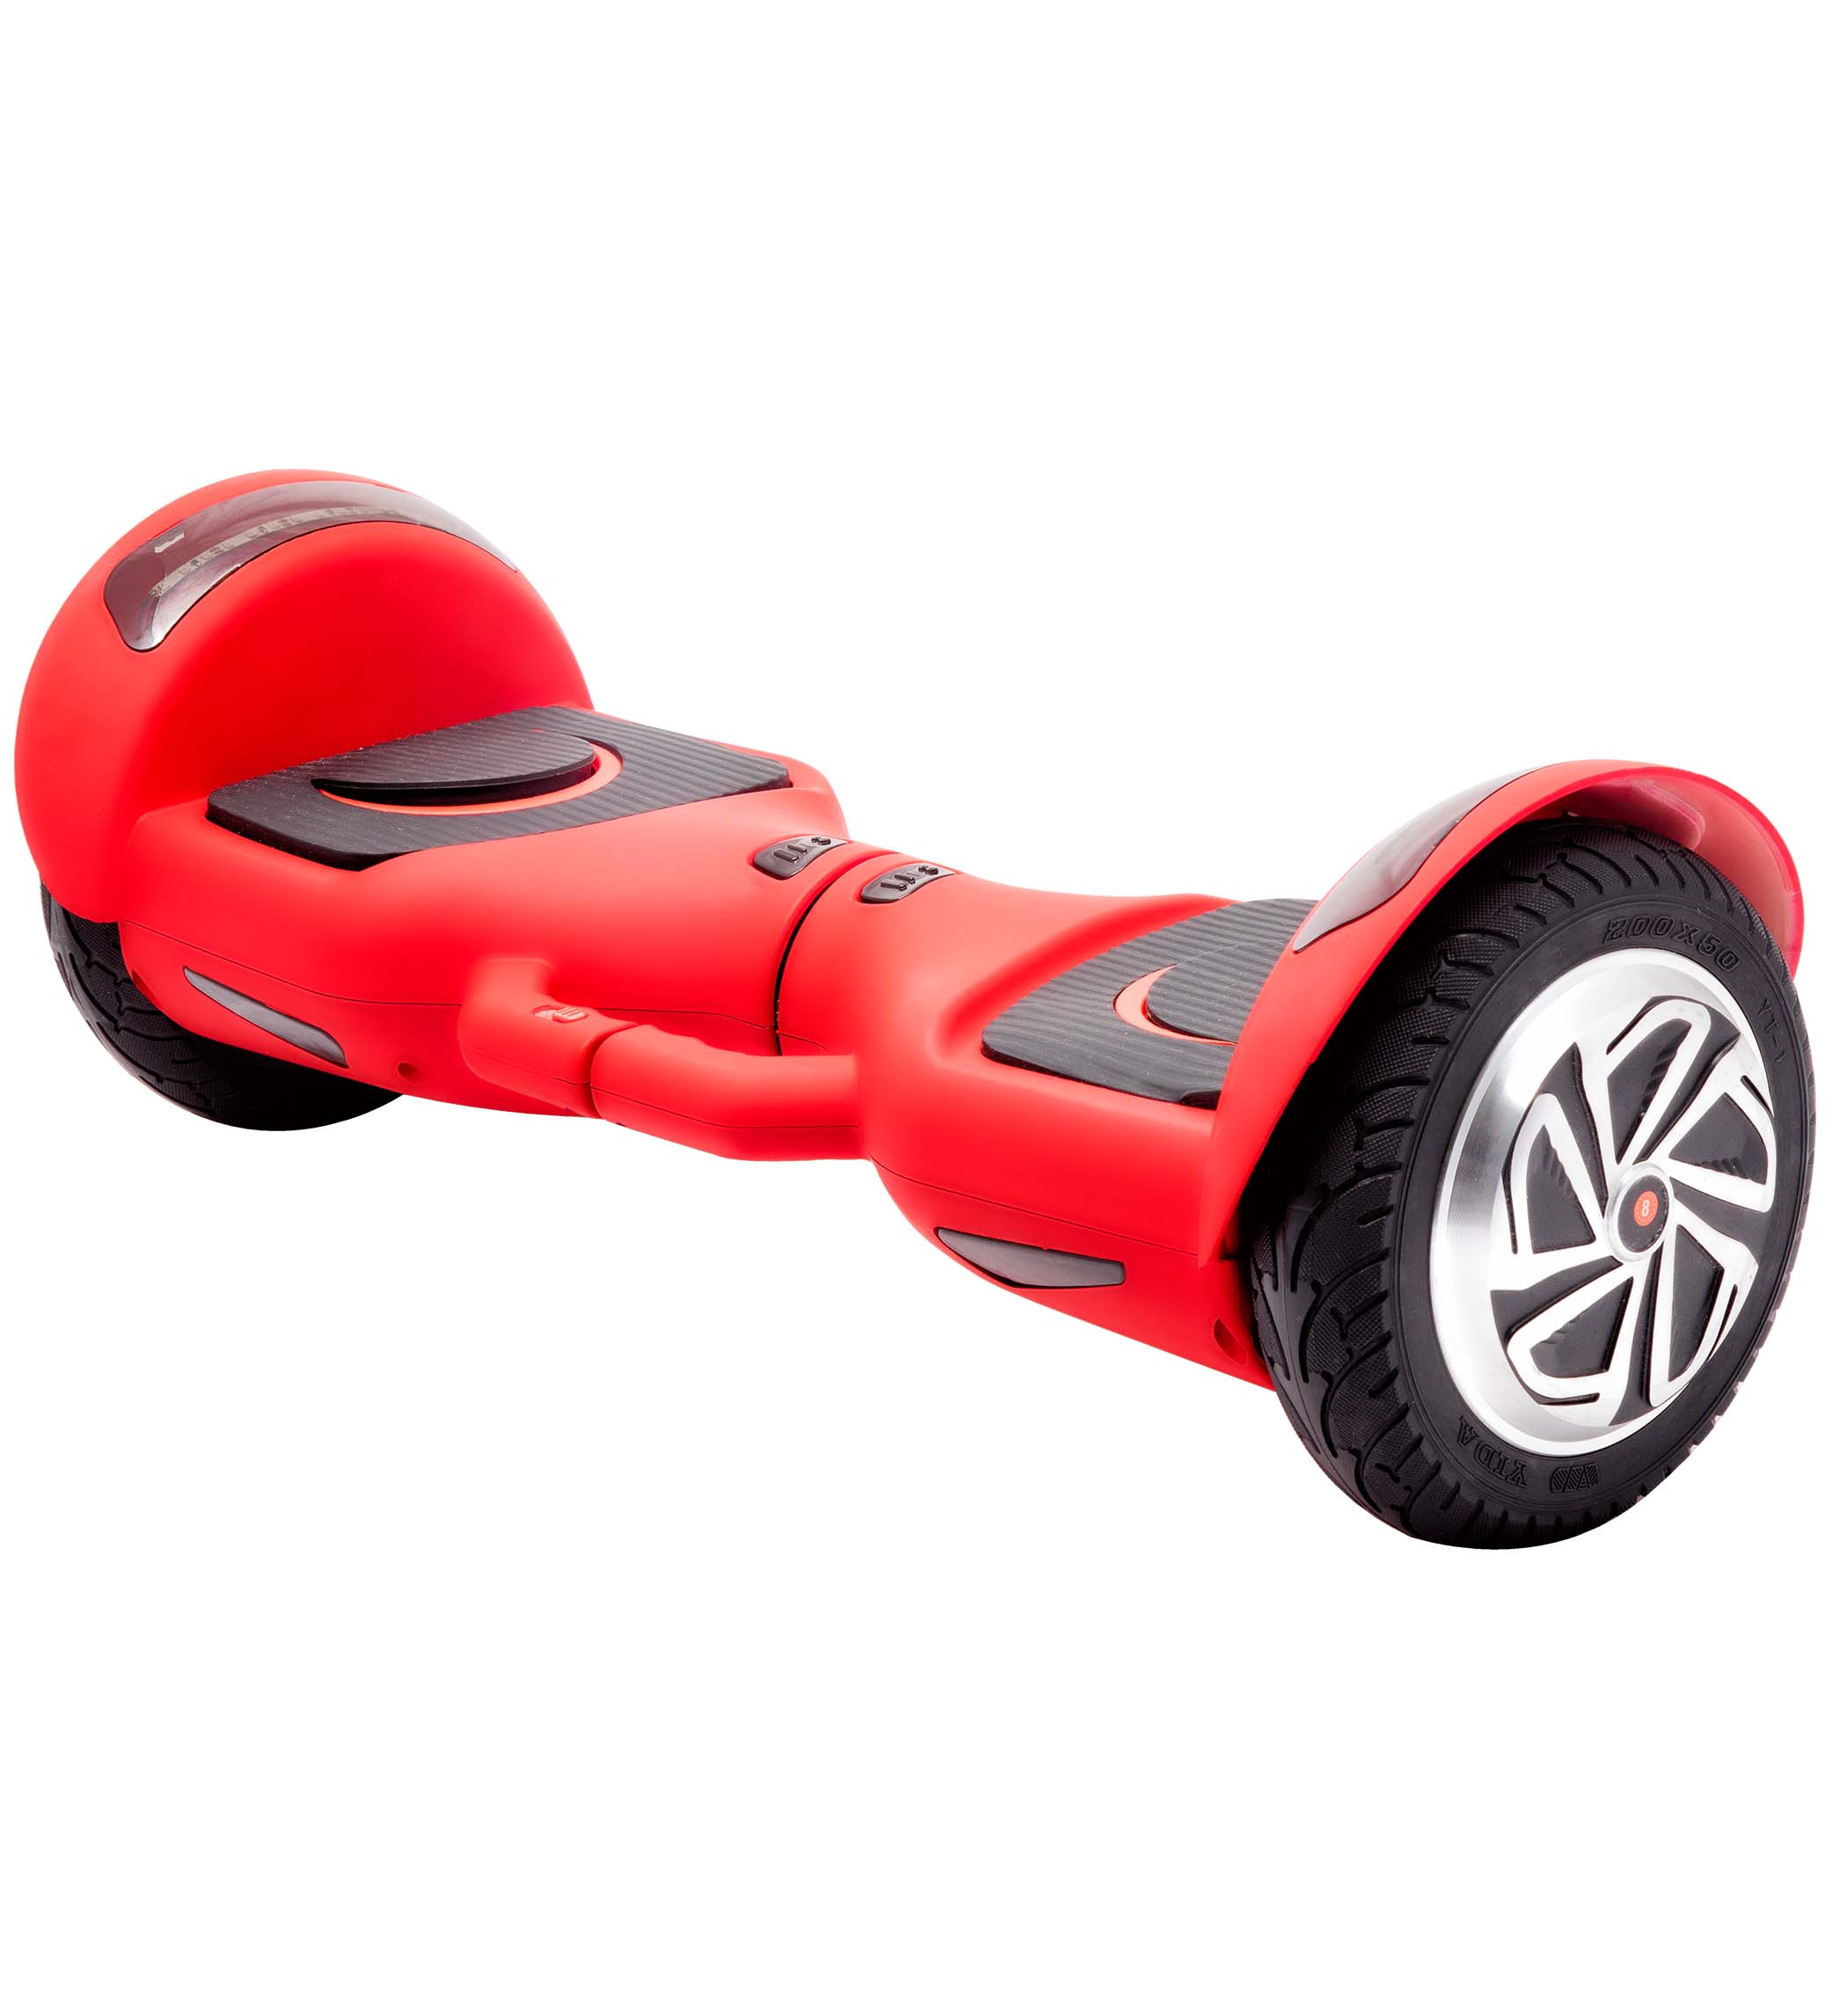 SCOOTER HOVERBOARD M7 اسکوتر برقی ام